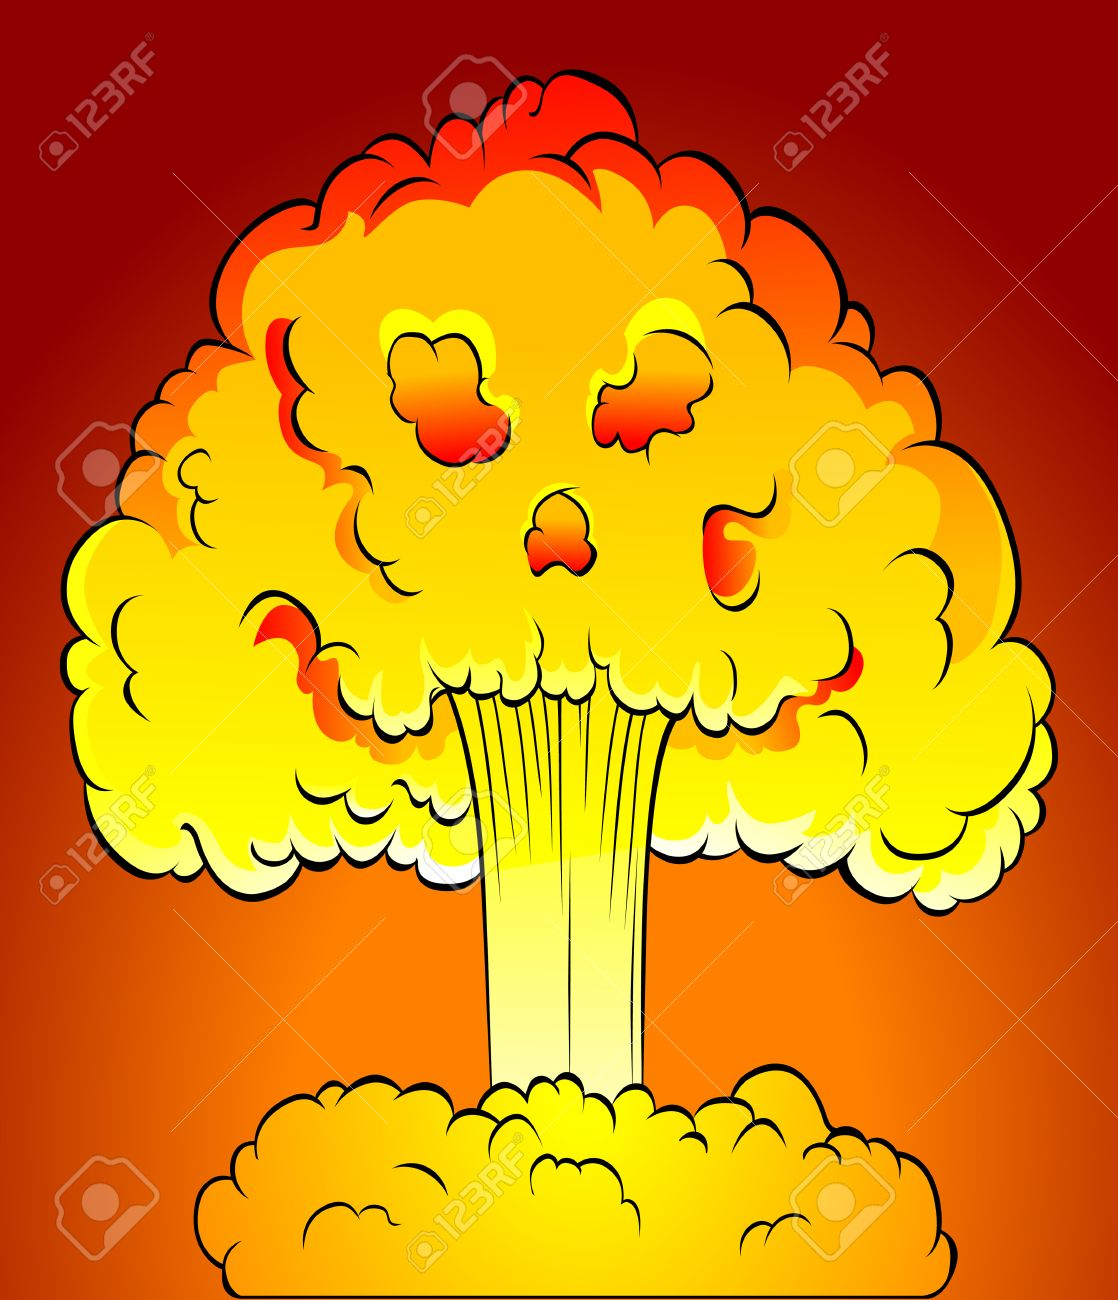 Nuclear Explosion With Skull Cloud. Vector Illustration Royalty.